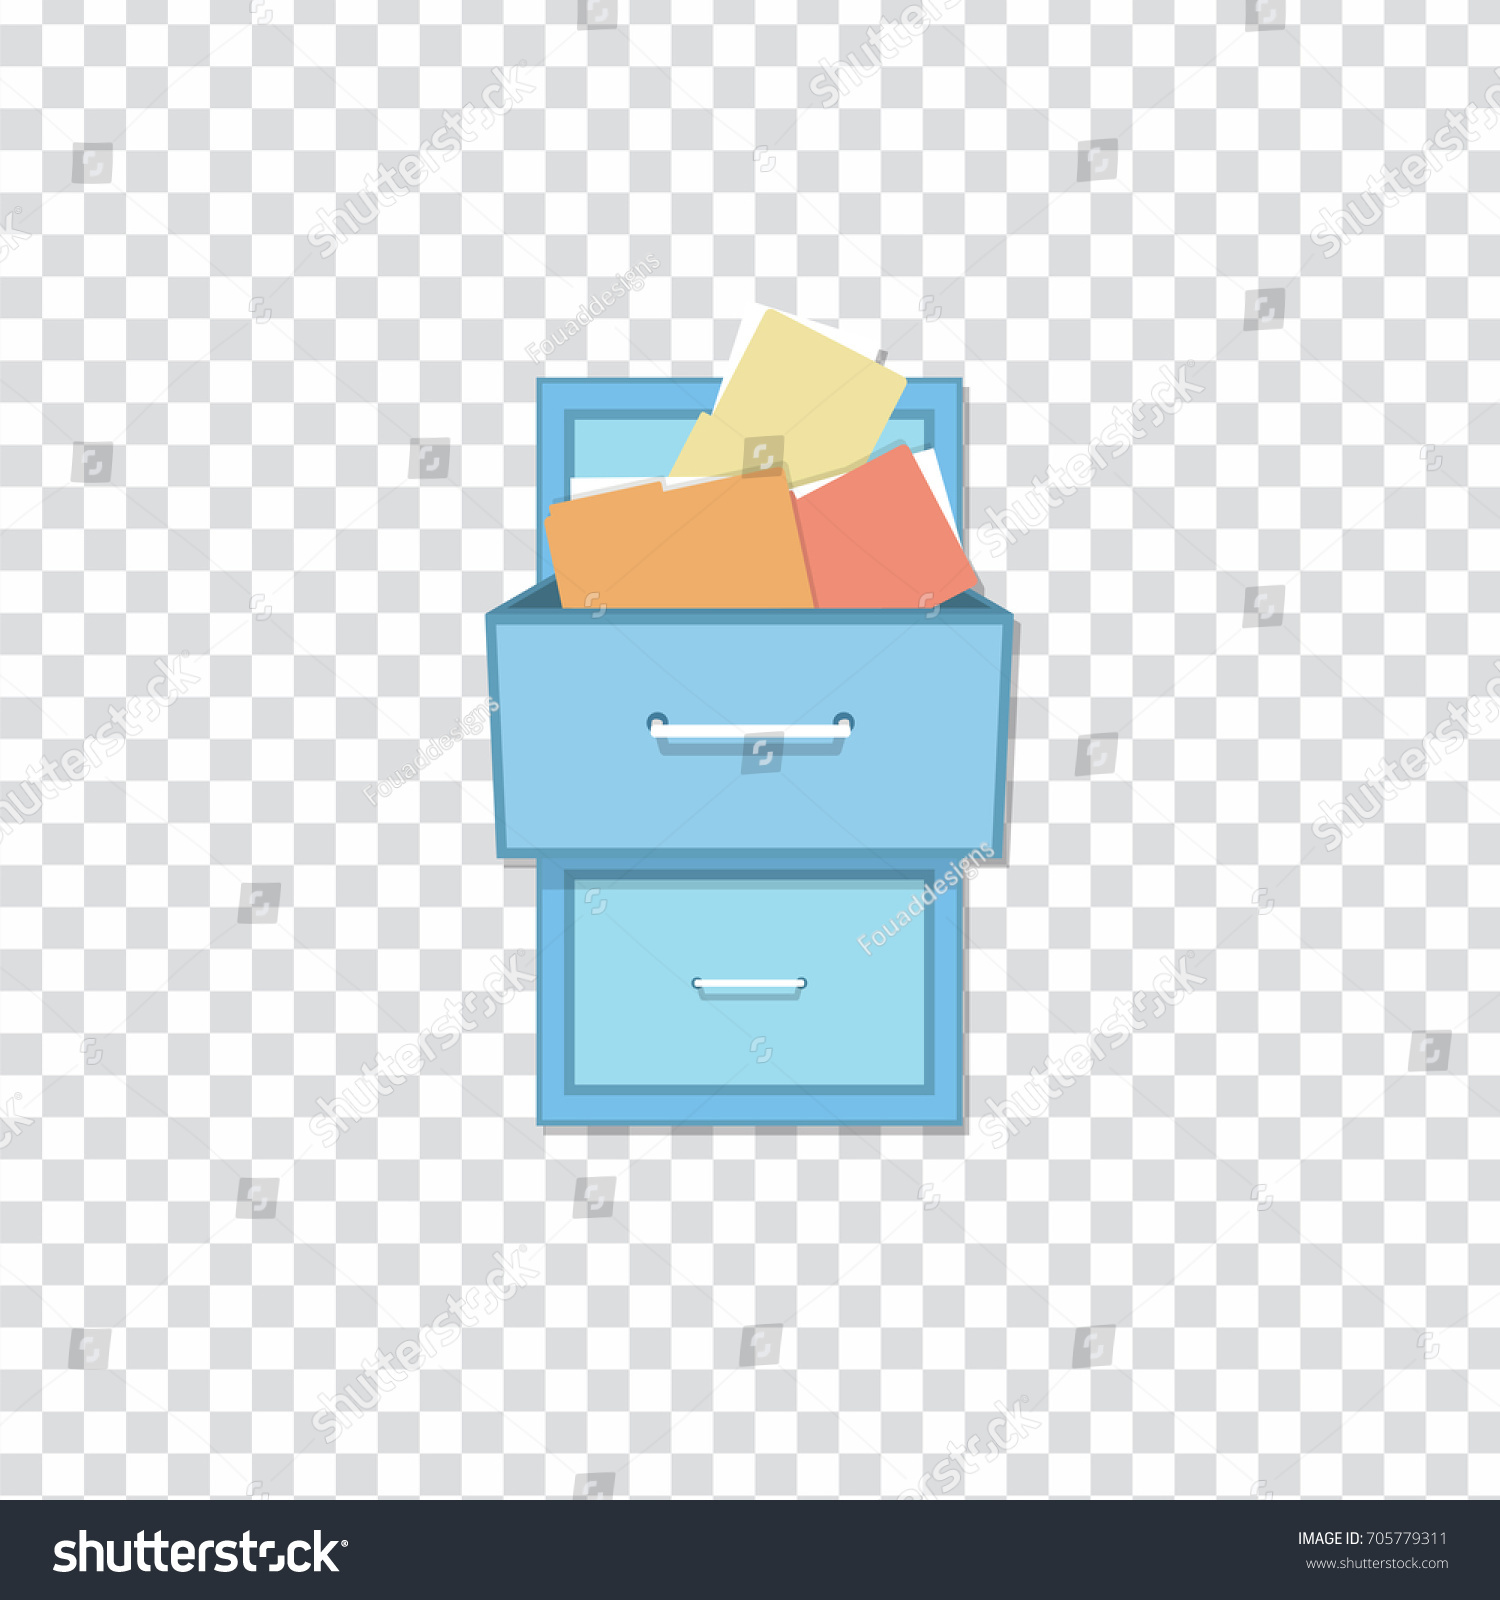 Filing Cabinet Icon Flat Flat Vector Icon Illustration Filling Cabinet Stock Vector